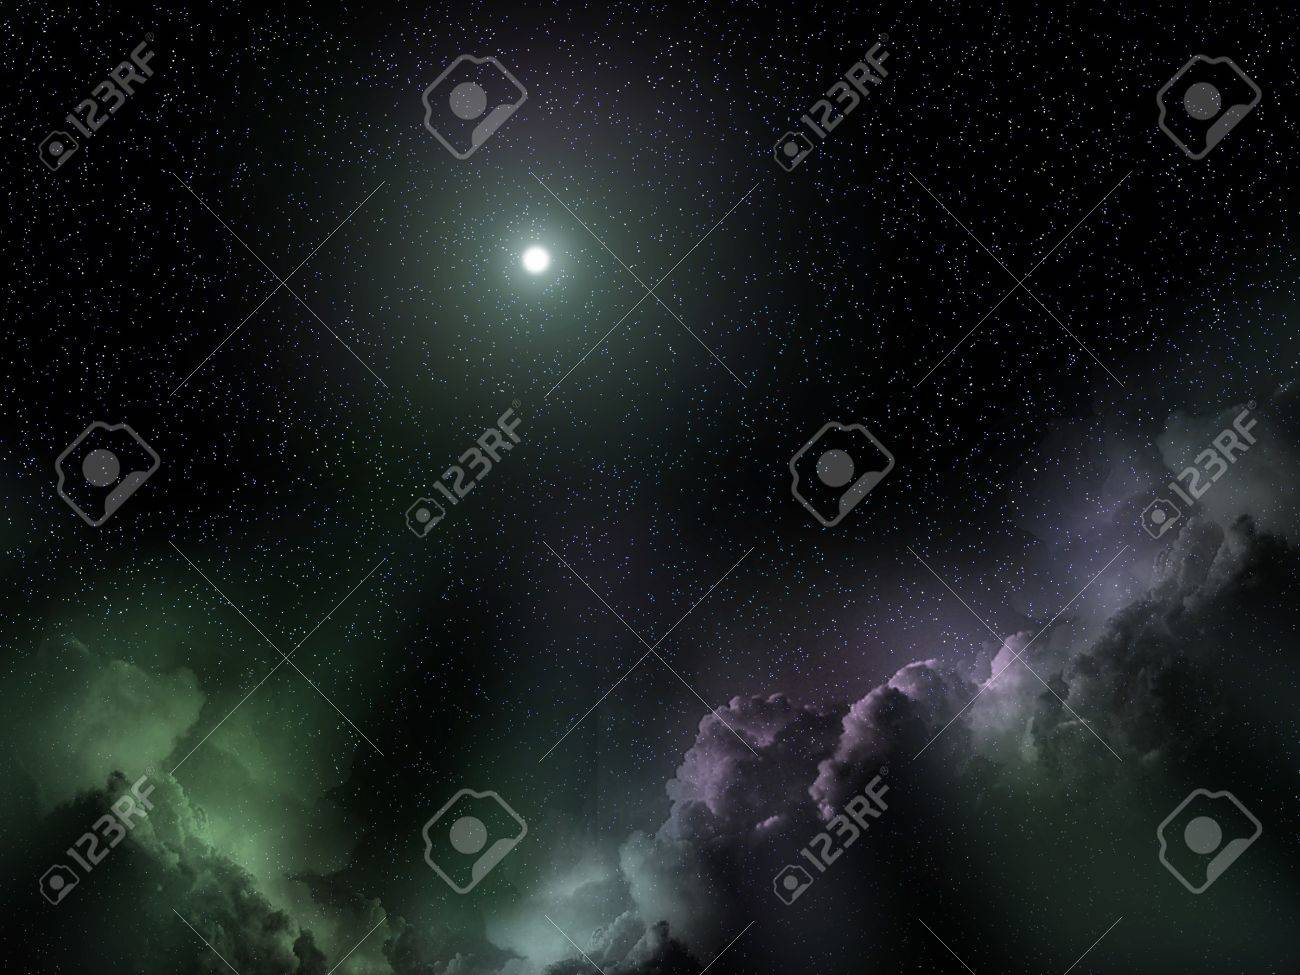 Space chrismas landscape with a Bethlehem star and galaxy clouds Stock Photo - 9164975